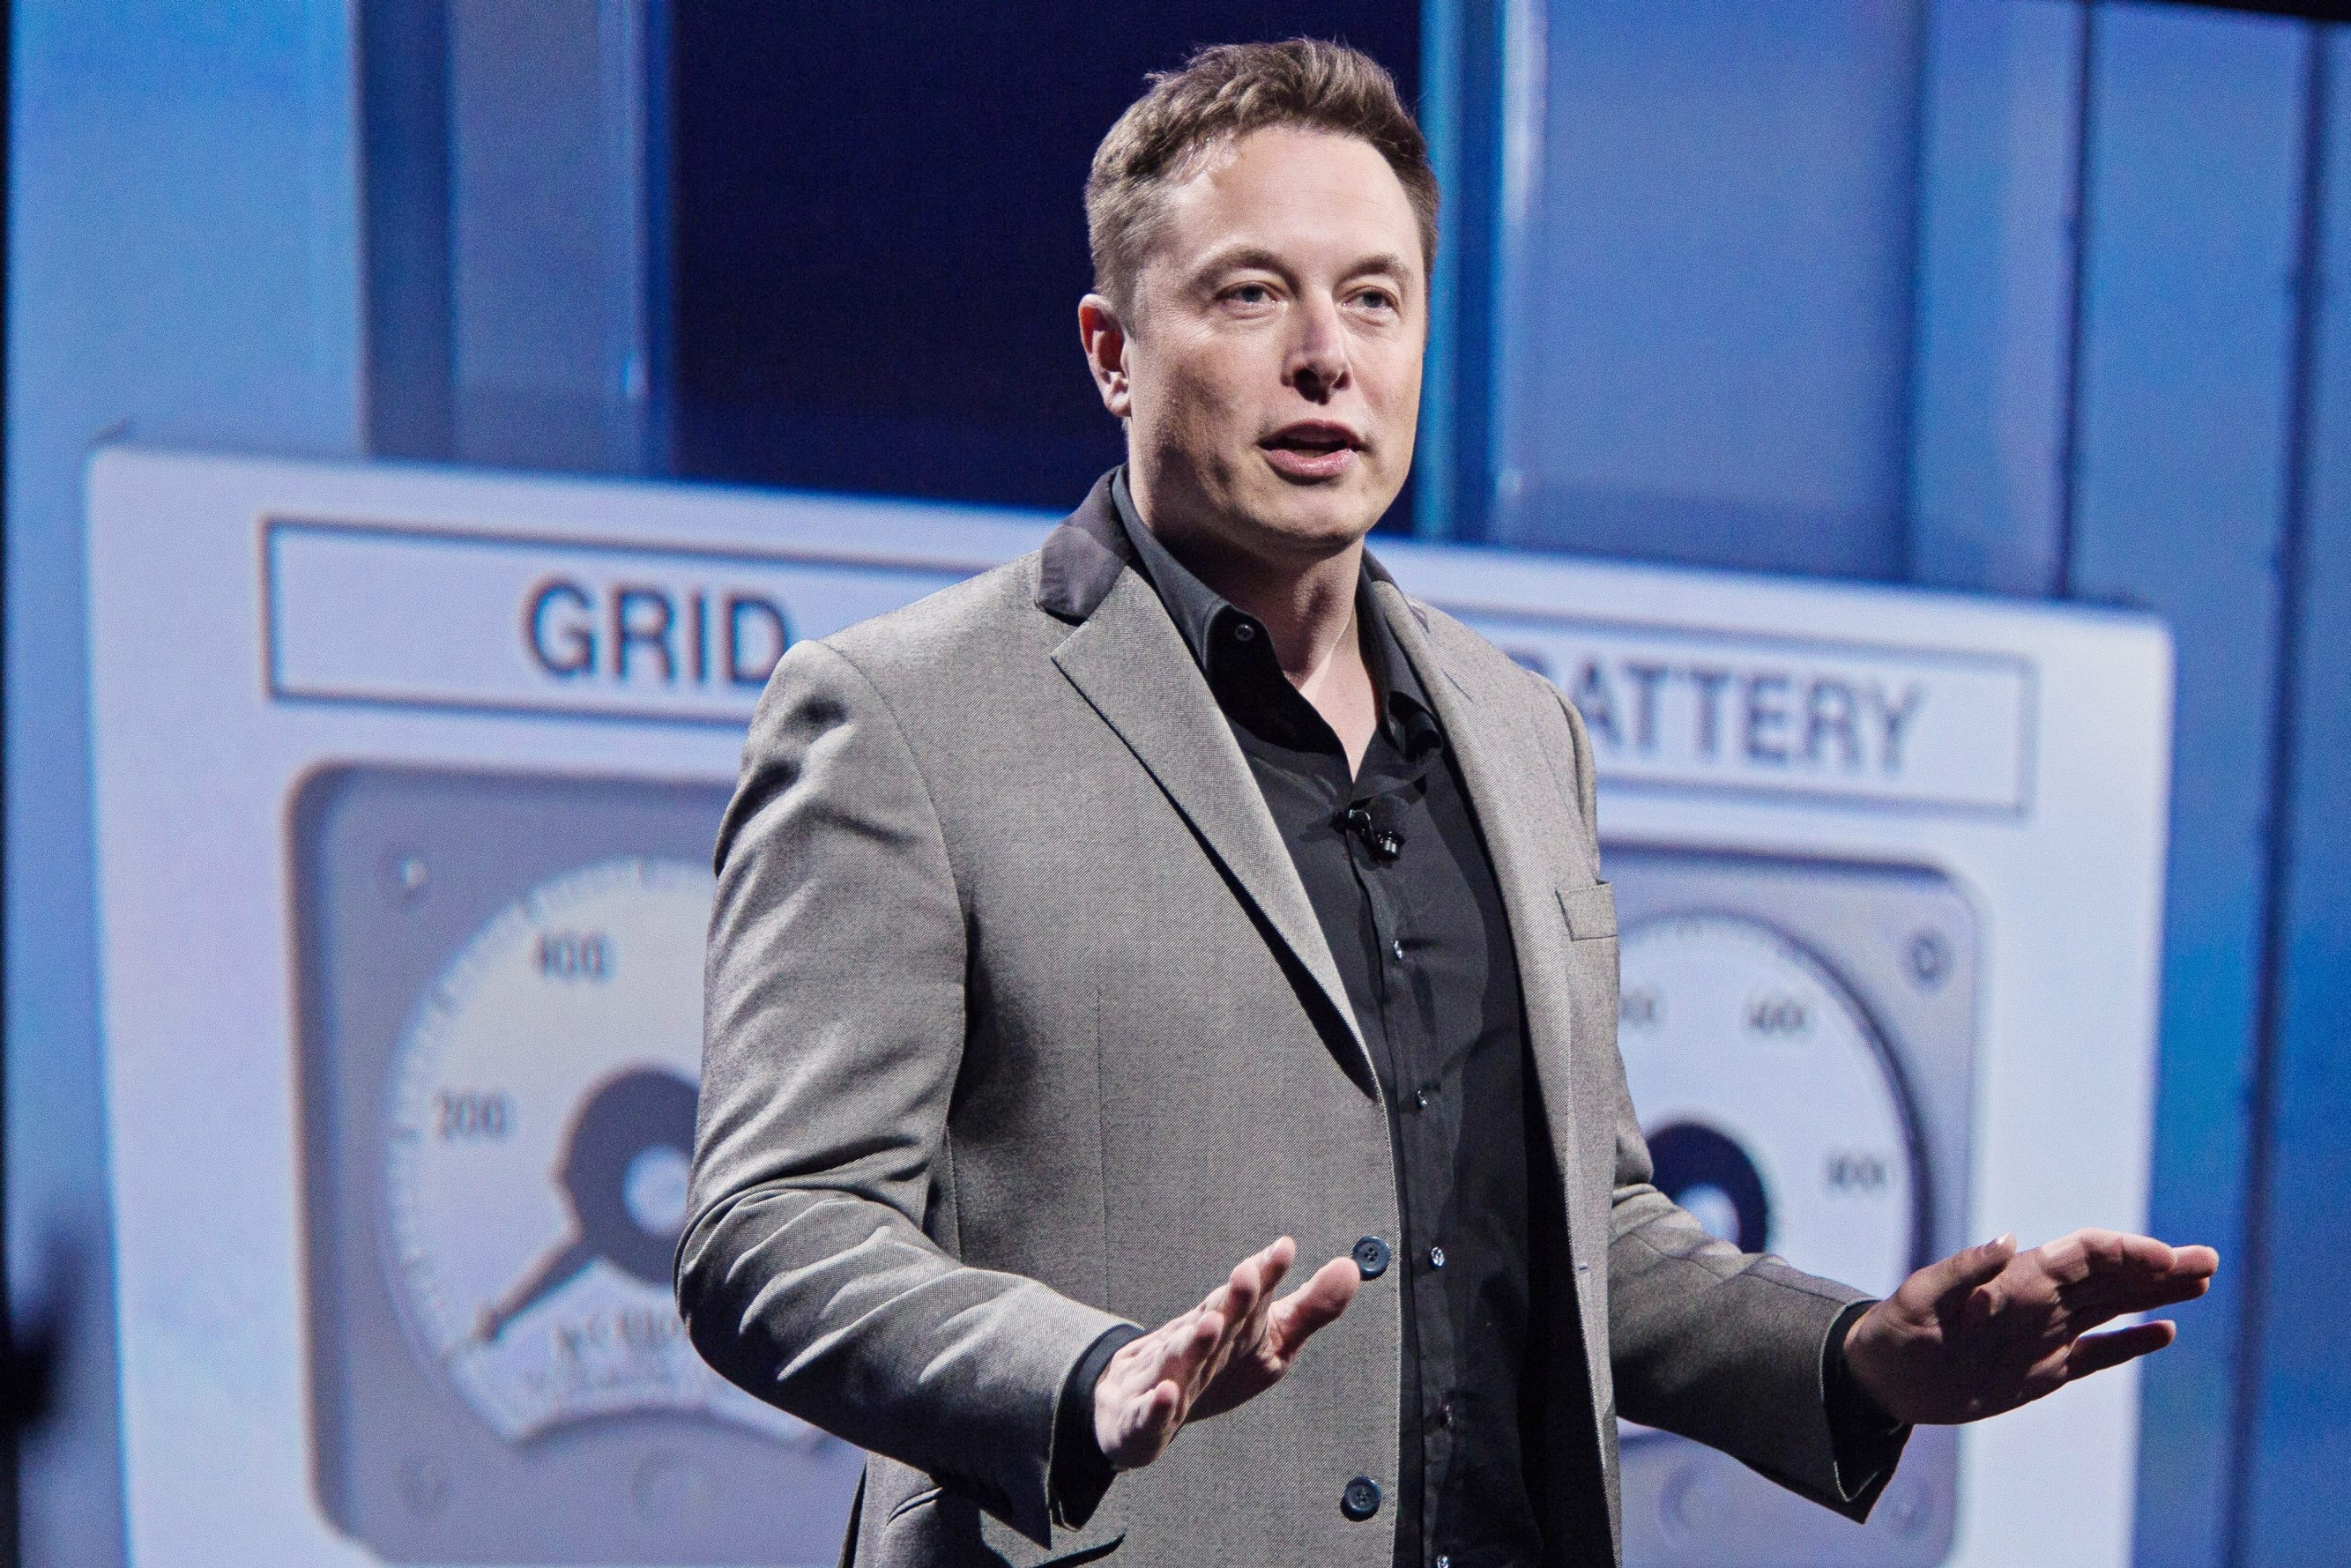 While two of Elon Musk's ventures -- Tesla Motors and SolarCity -- have received billions in subsidies, they are creating innovations in clean energy. (Bloomberg News file photo)